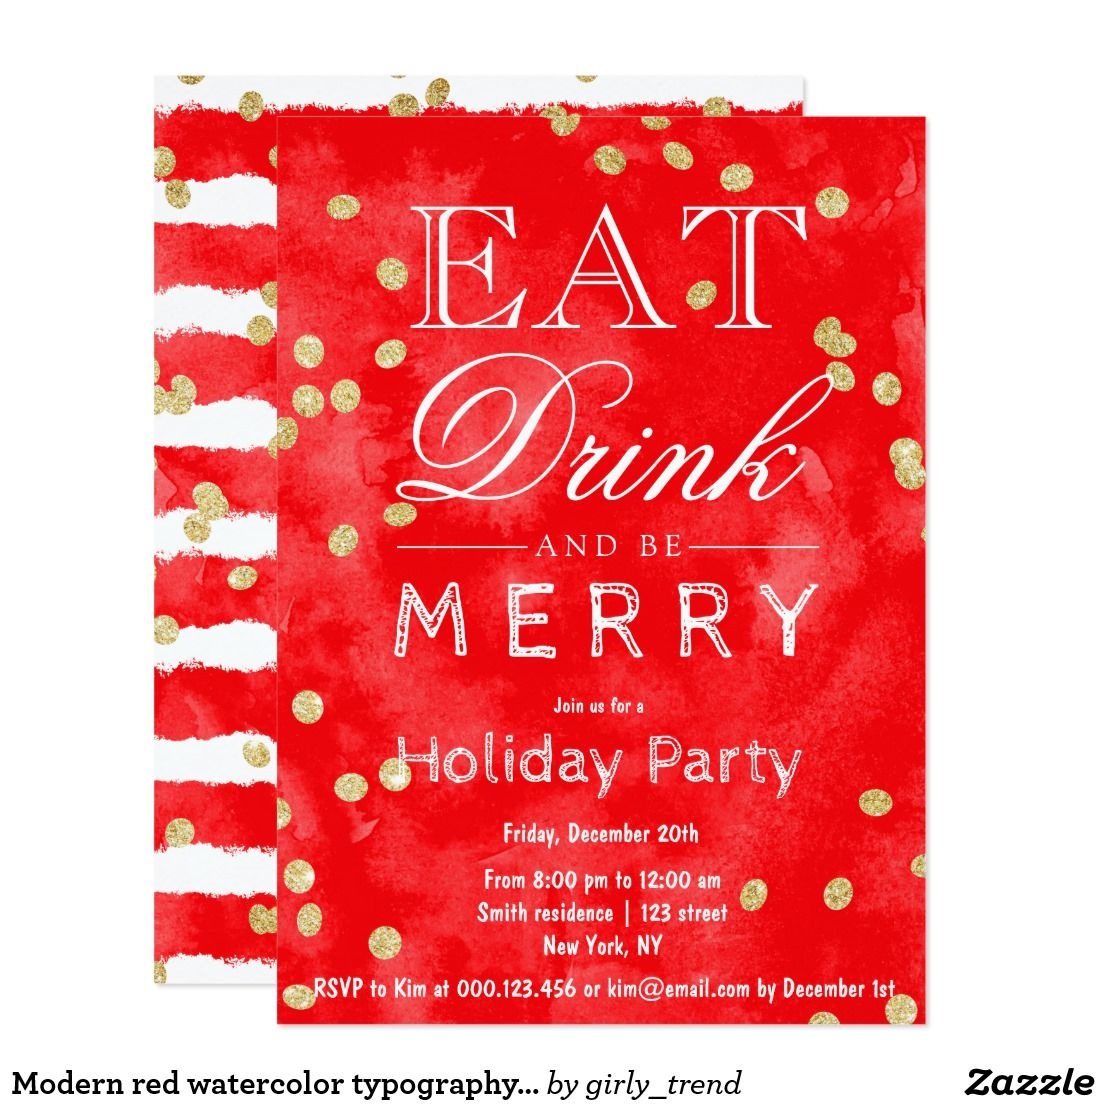 Modern red watercolor typography Christmas party Card   Watercolor ...